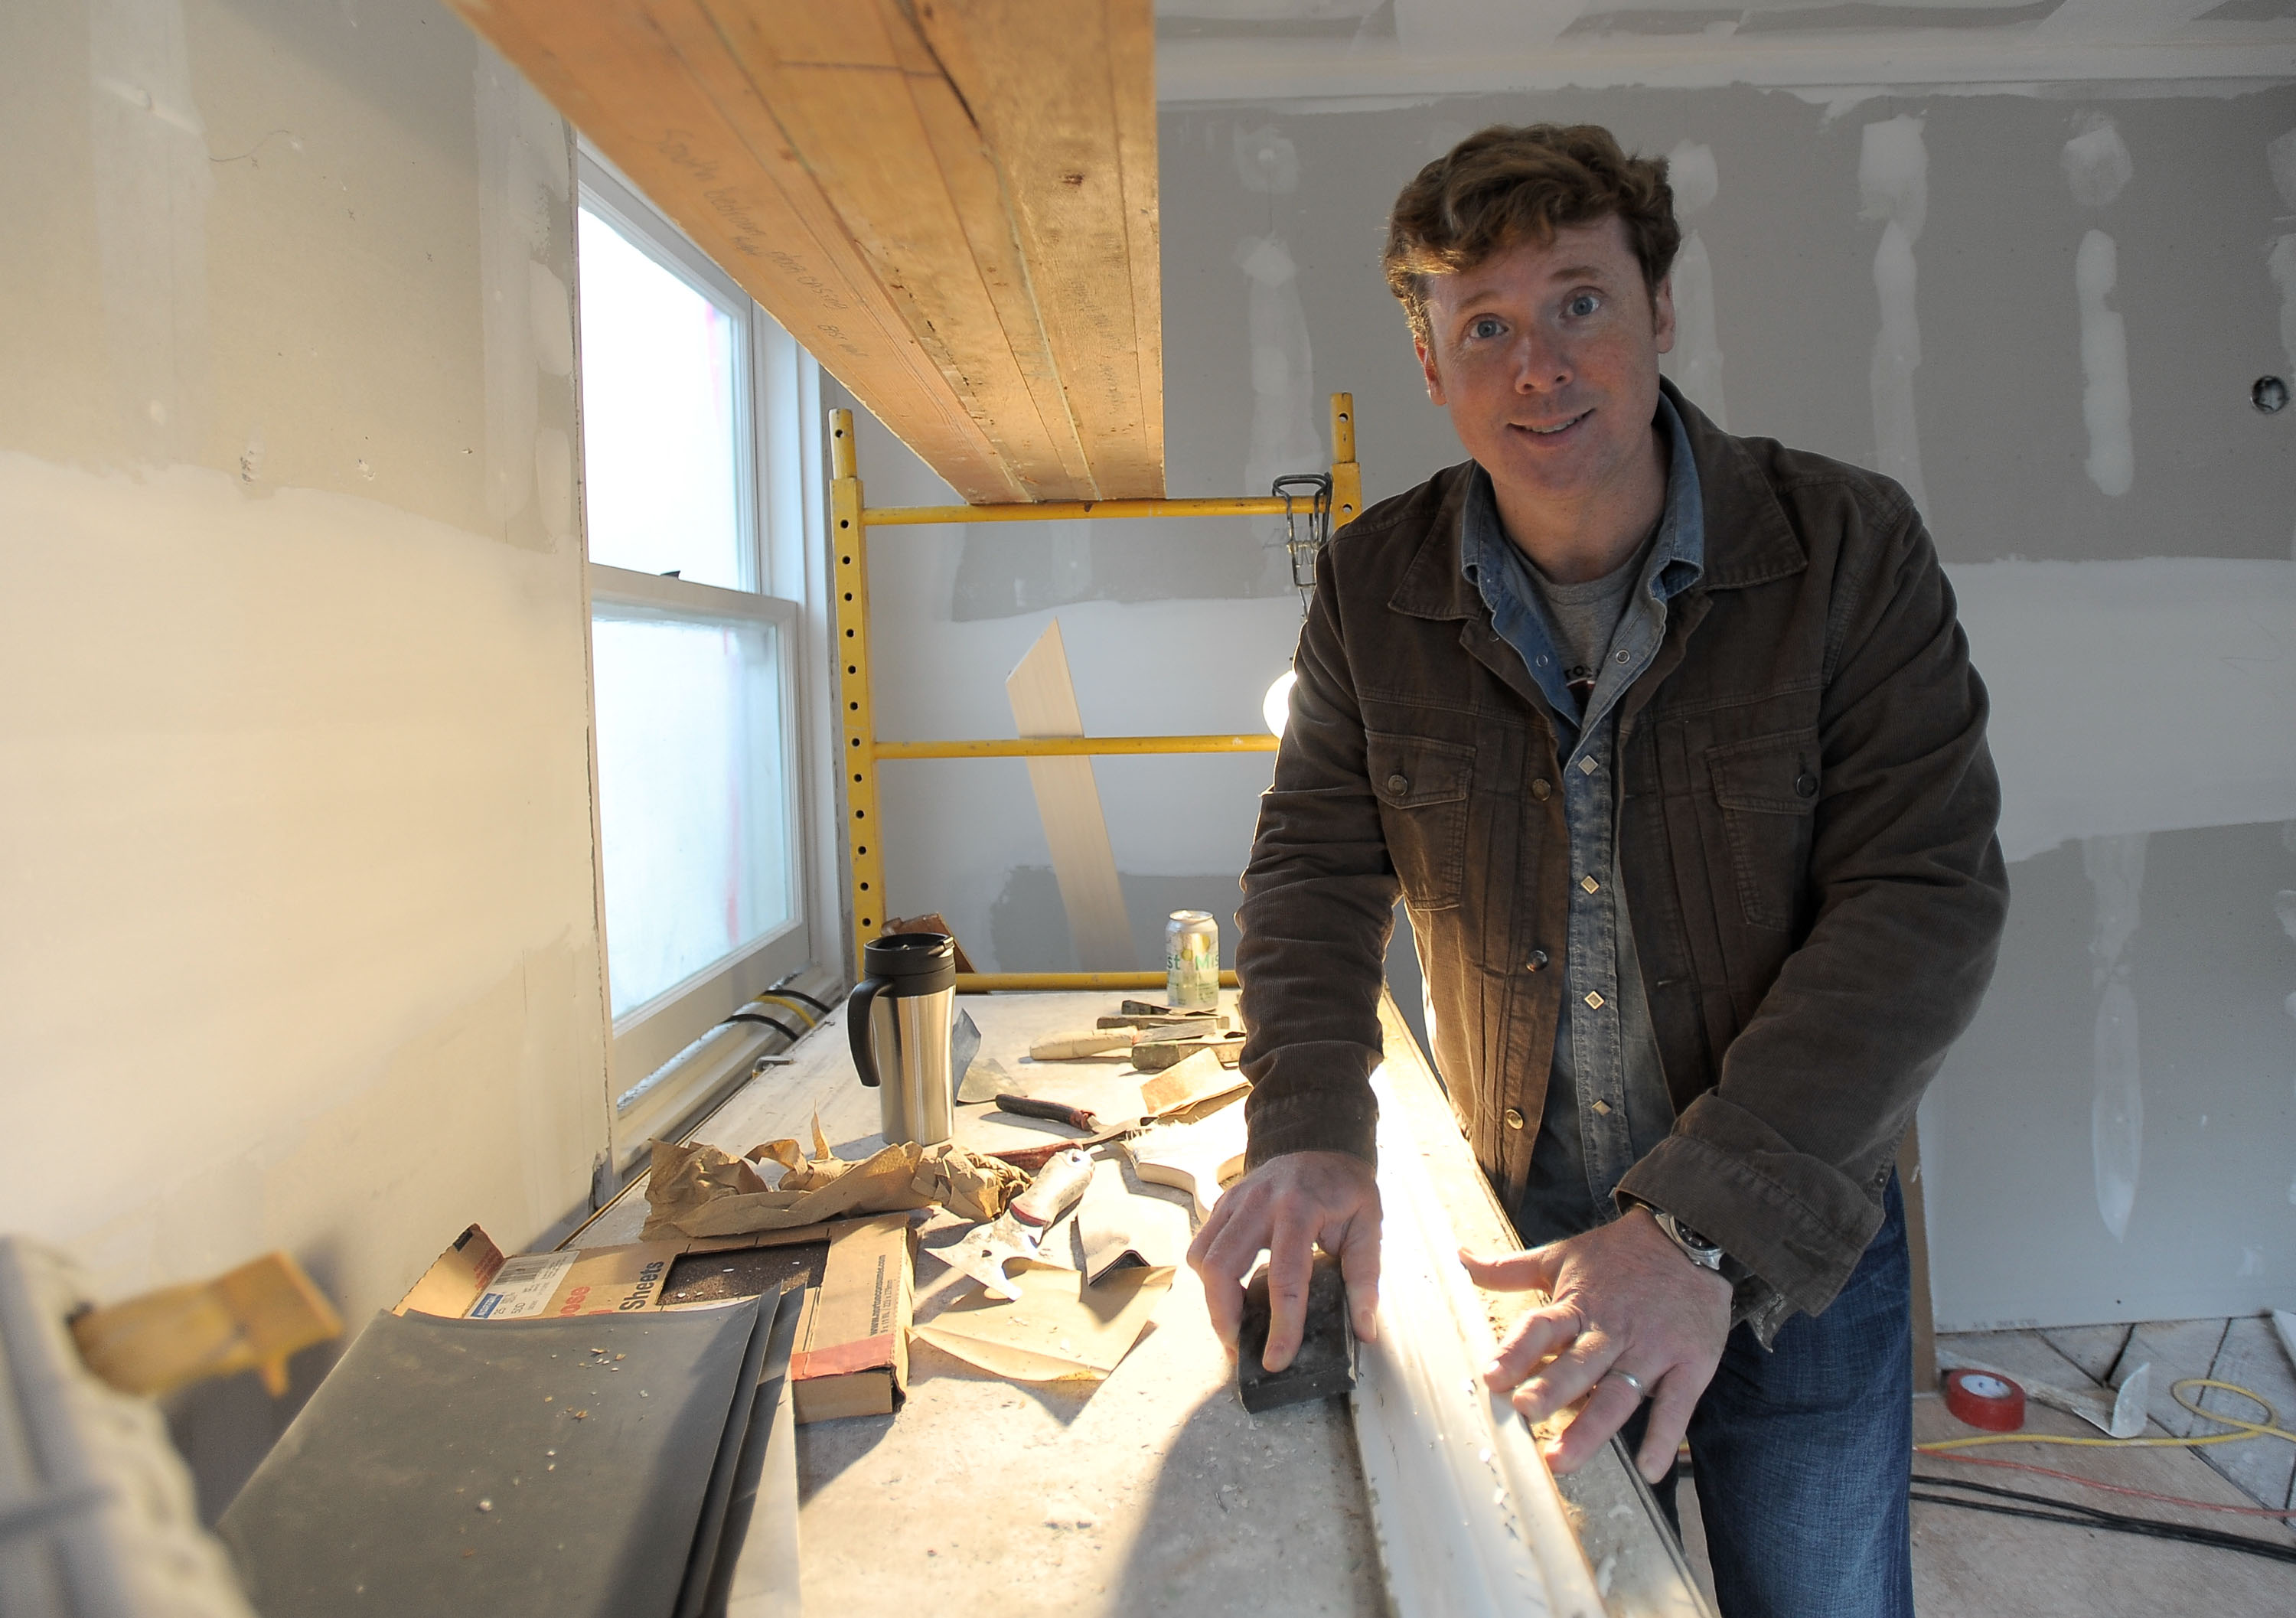 Hgtv s masters of flip stars pbs 39 s this old house for Flip this house host